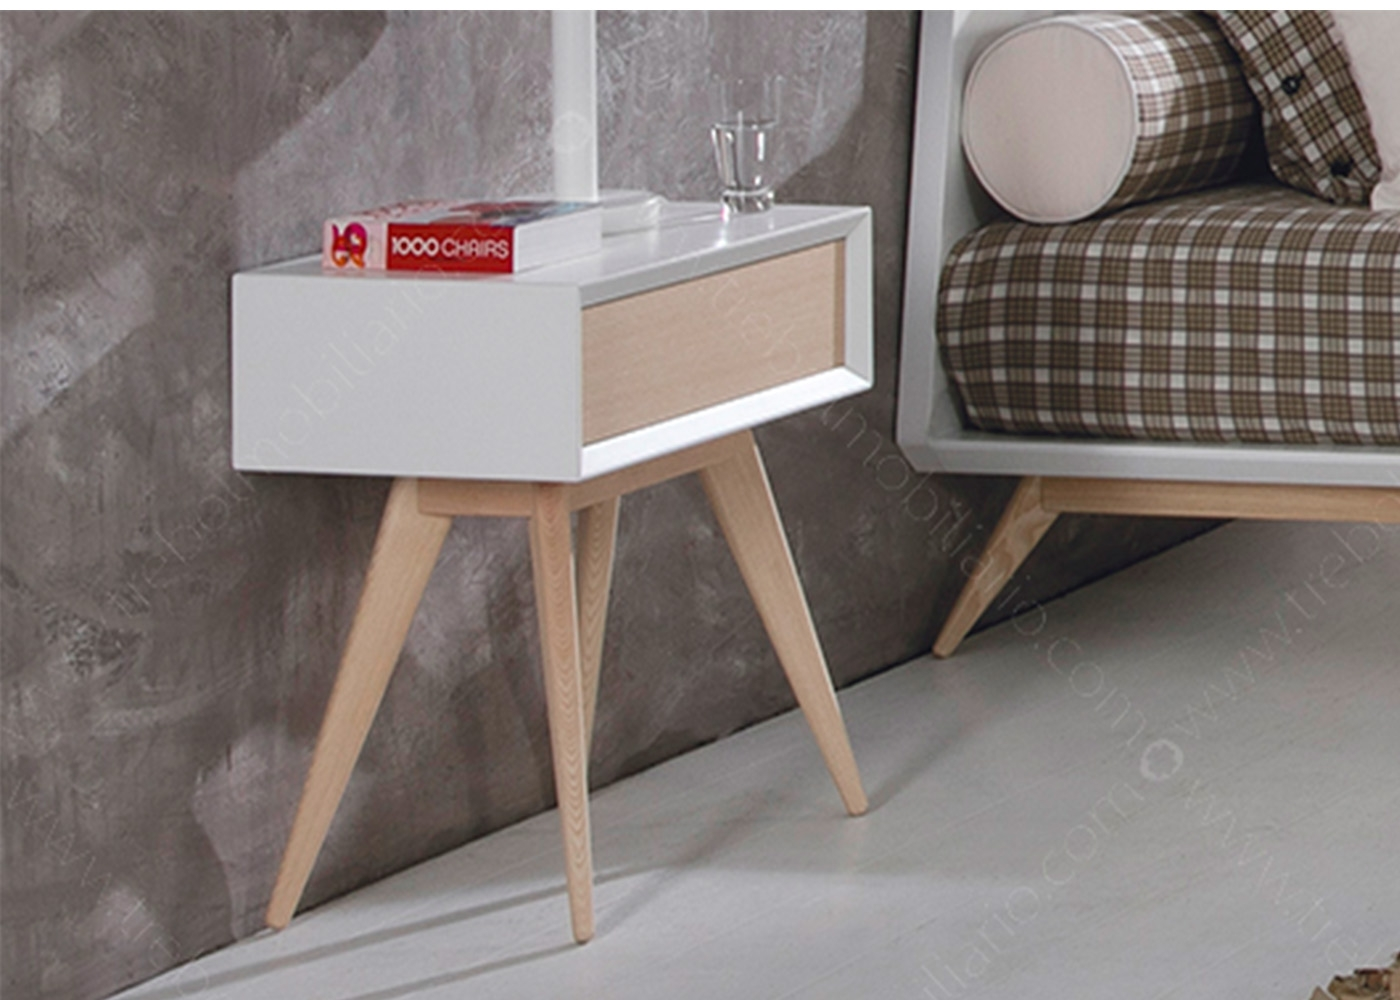 Table de nuit design et de qualit chez ksl living - Table de nuit scandinave ...